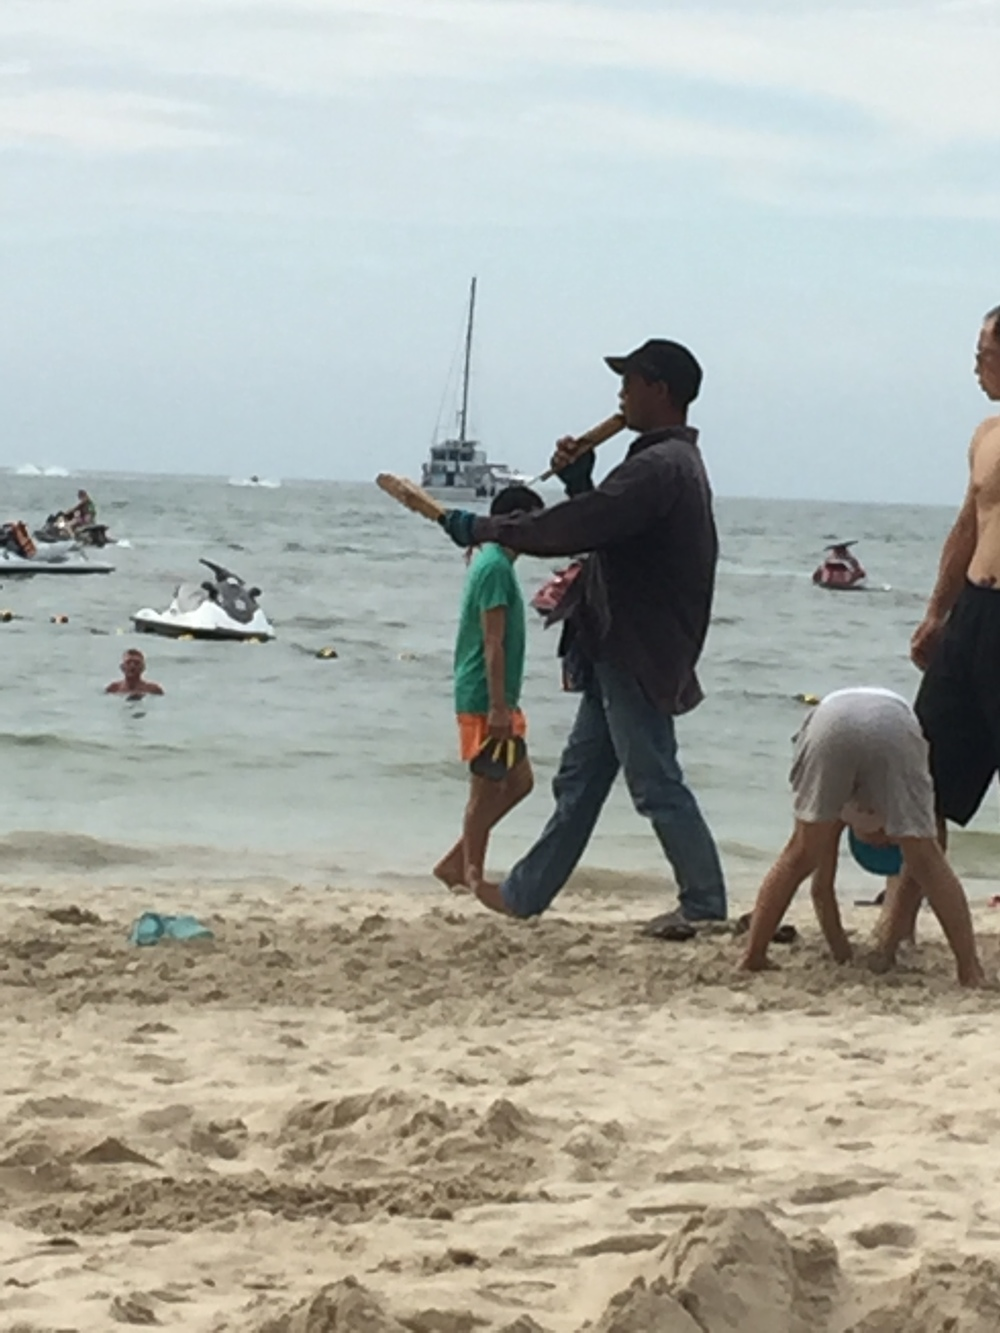 Selling stuff on the beach. These flute things sounded cool, but don't make eye contact or he'll think you want one.